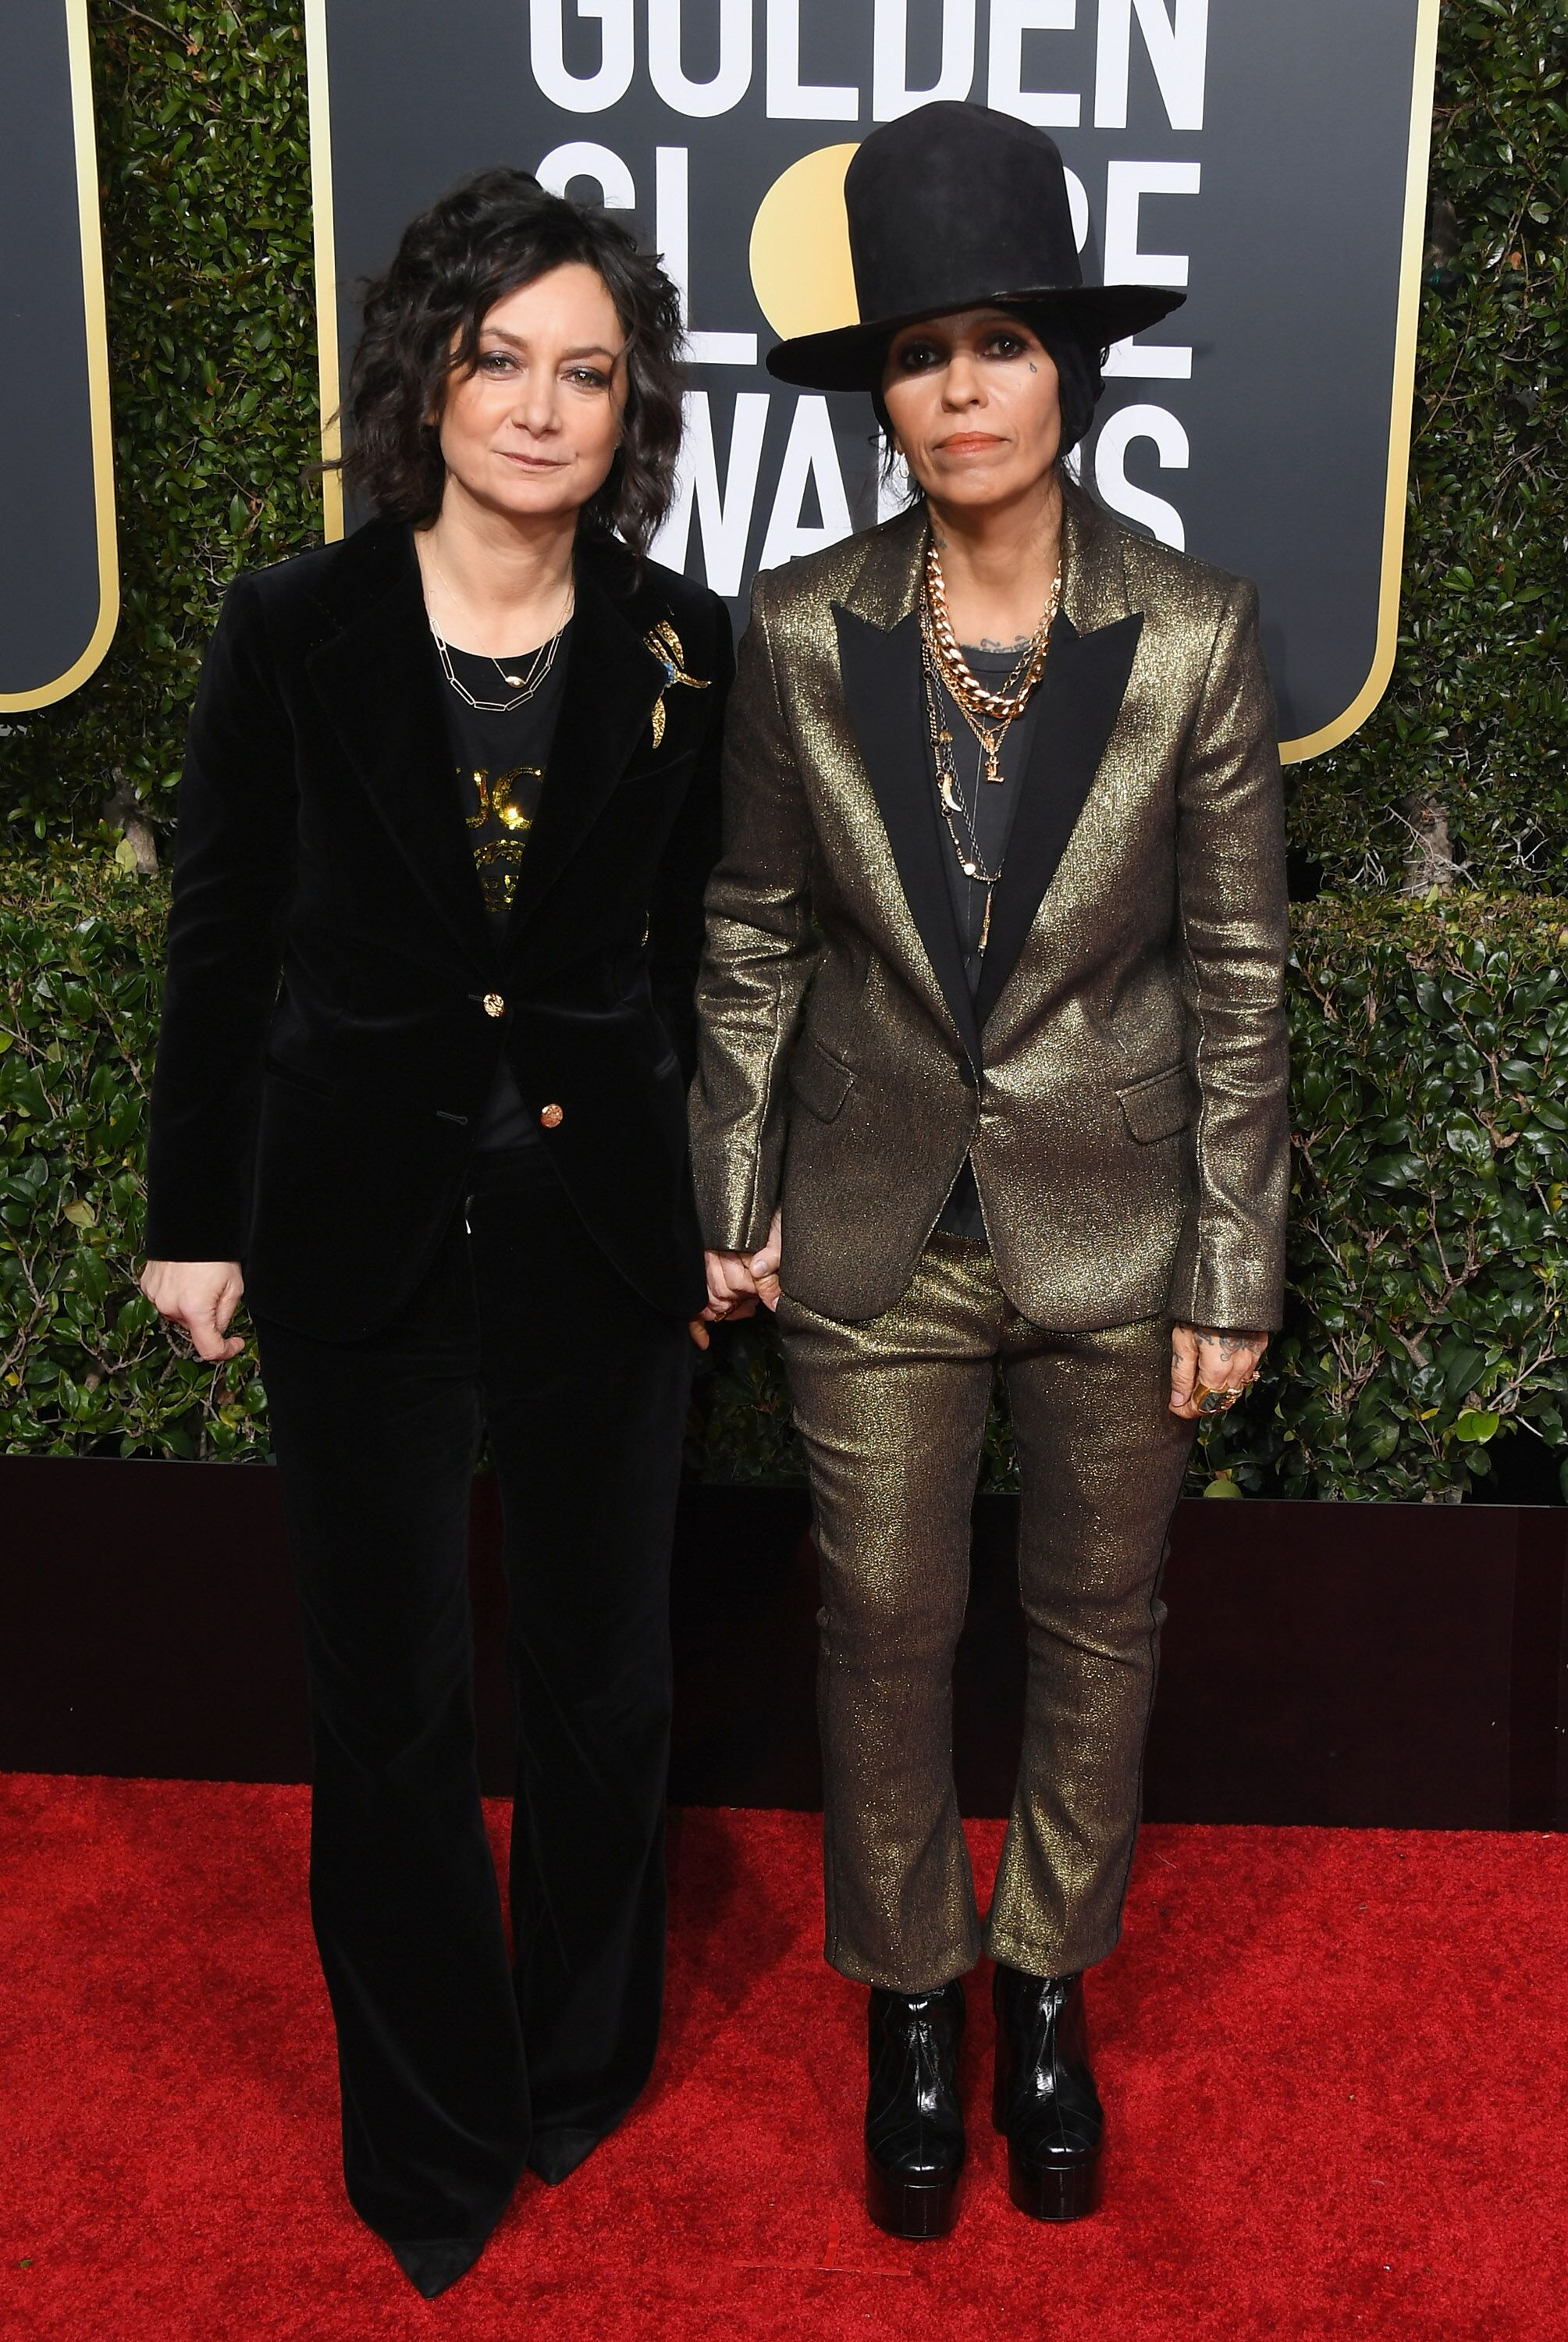 Sara GIlbert and Linda Perry at the Golden Globe Awards. | Source: Getty Images